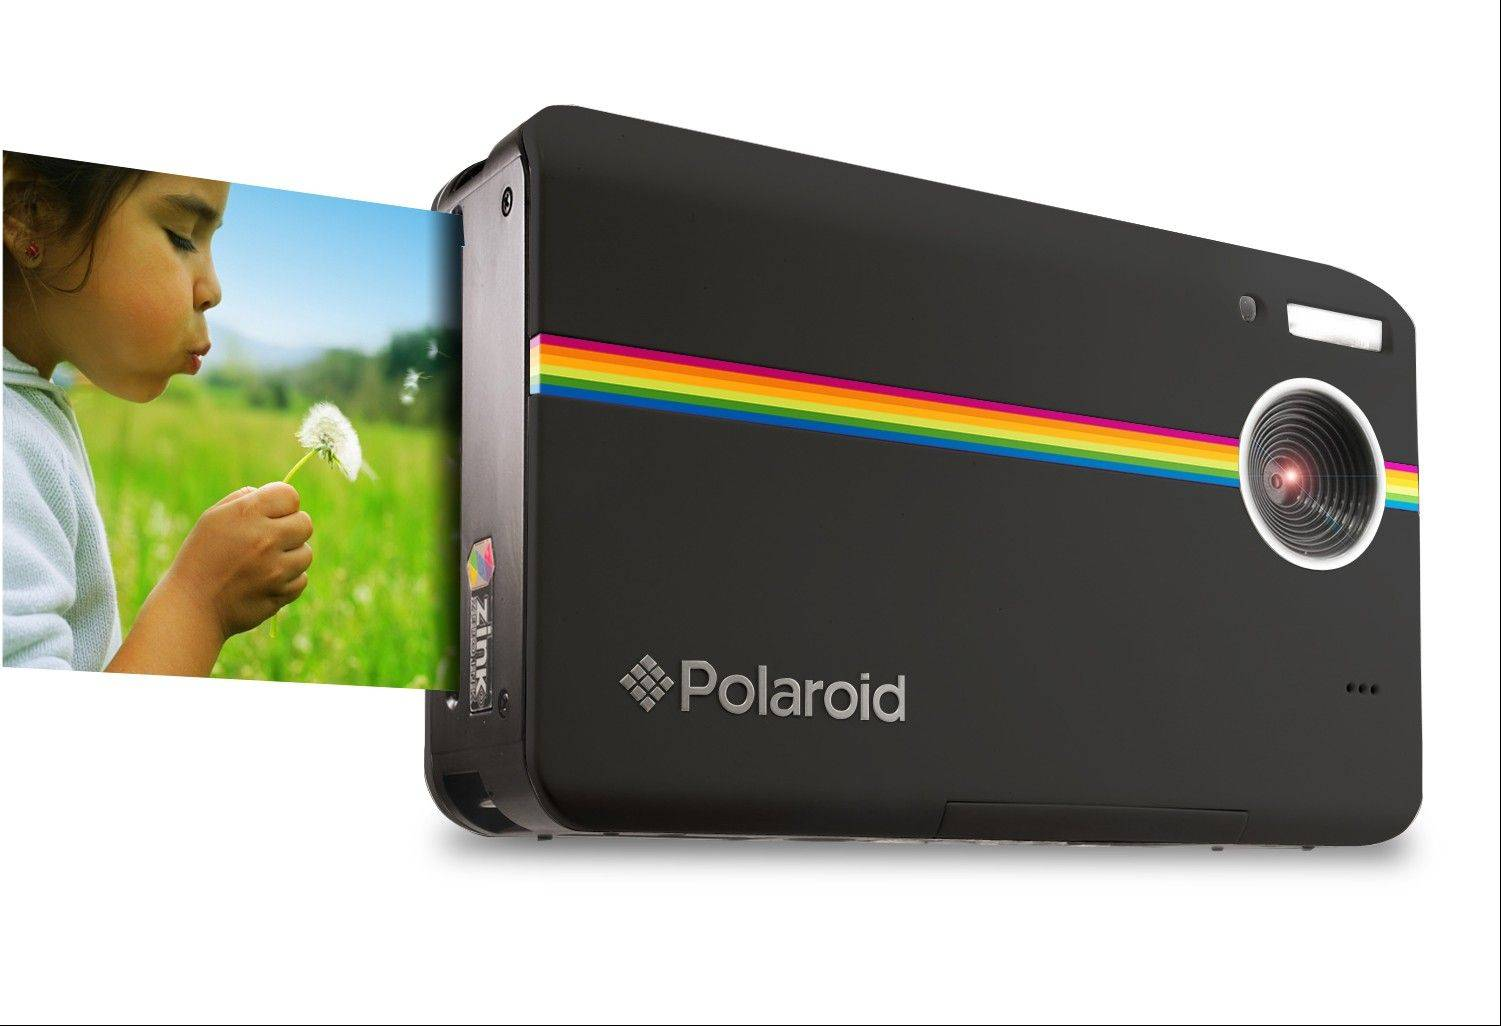 The new digital Polaroid camera Z2300 can print photos instantly, plus it offers a choice of borders, you can preview photos before printing and save images to upload.